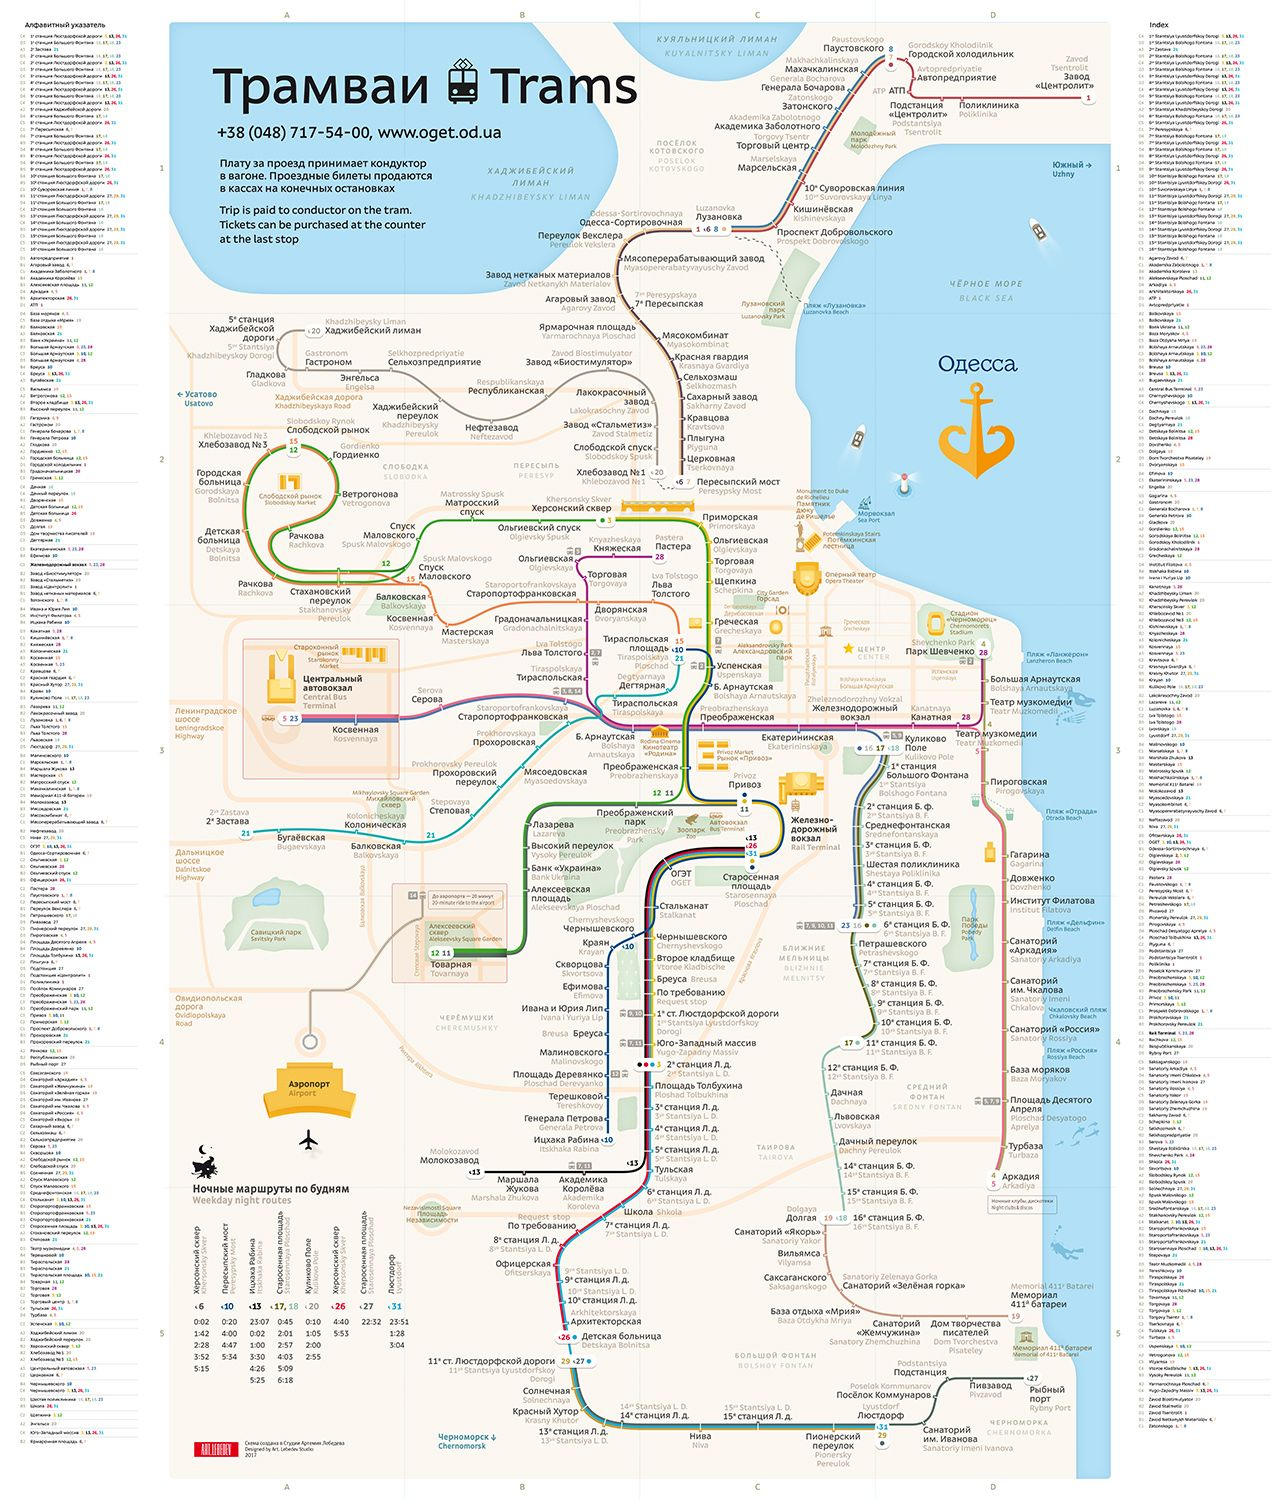 Submission tram map of odessa ukraine by art lebedev studios submission tram map of odessa ukraine by art lebedev studios 2017 sent my gumiabroncs Images